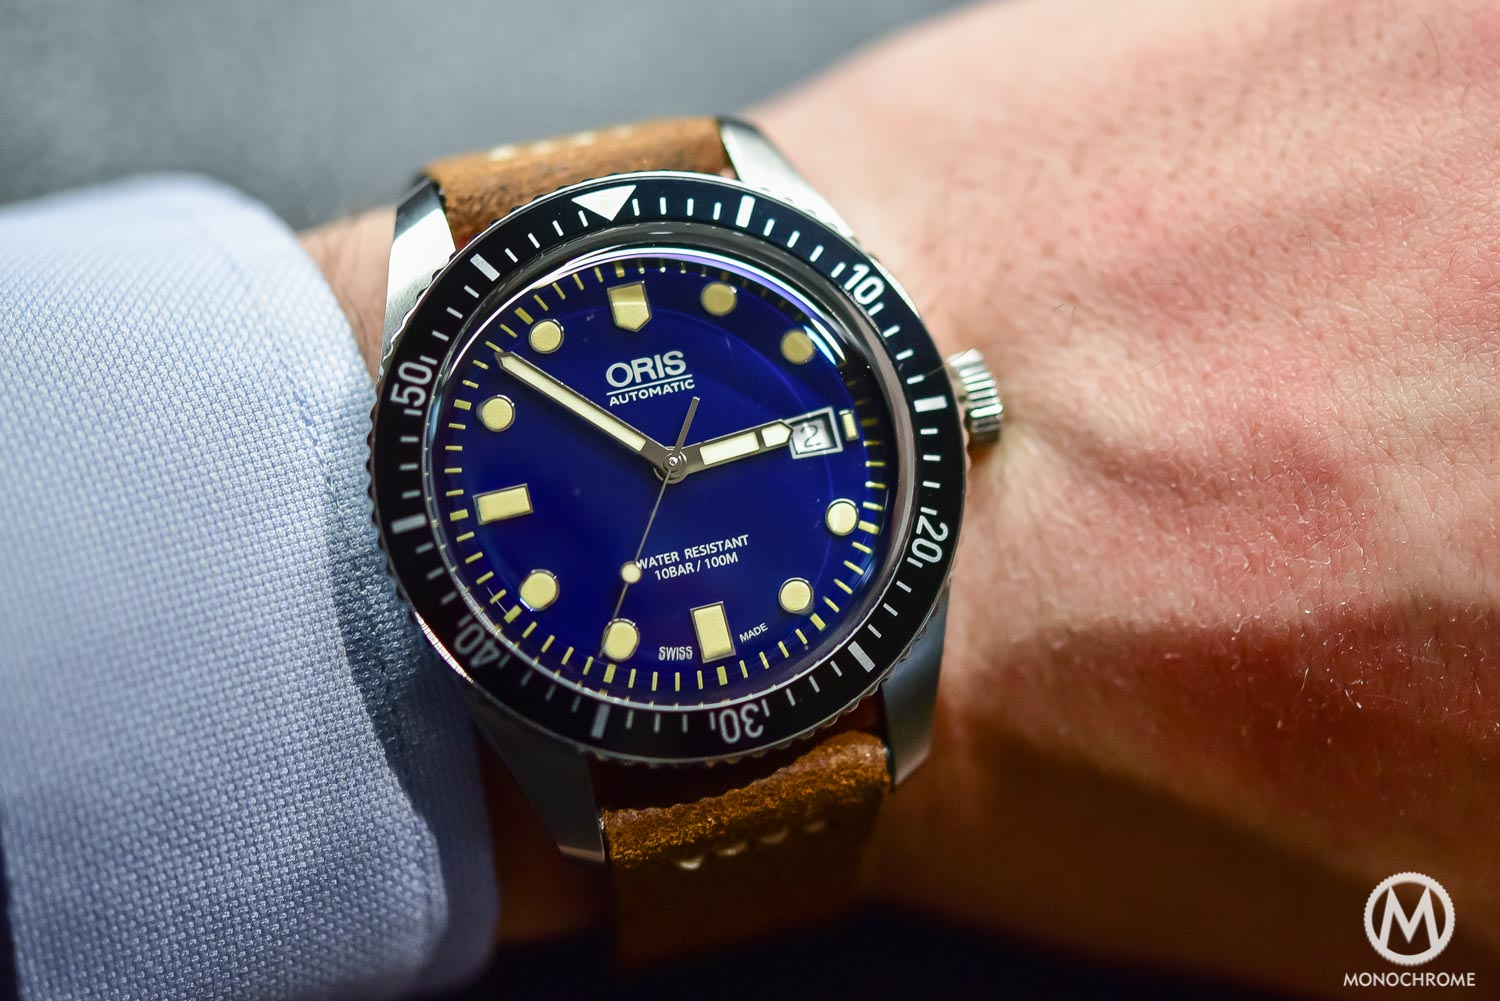 Oris Divers Sixty Five 42mm Blue Dial - Baselworld 2016 - Wristshot